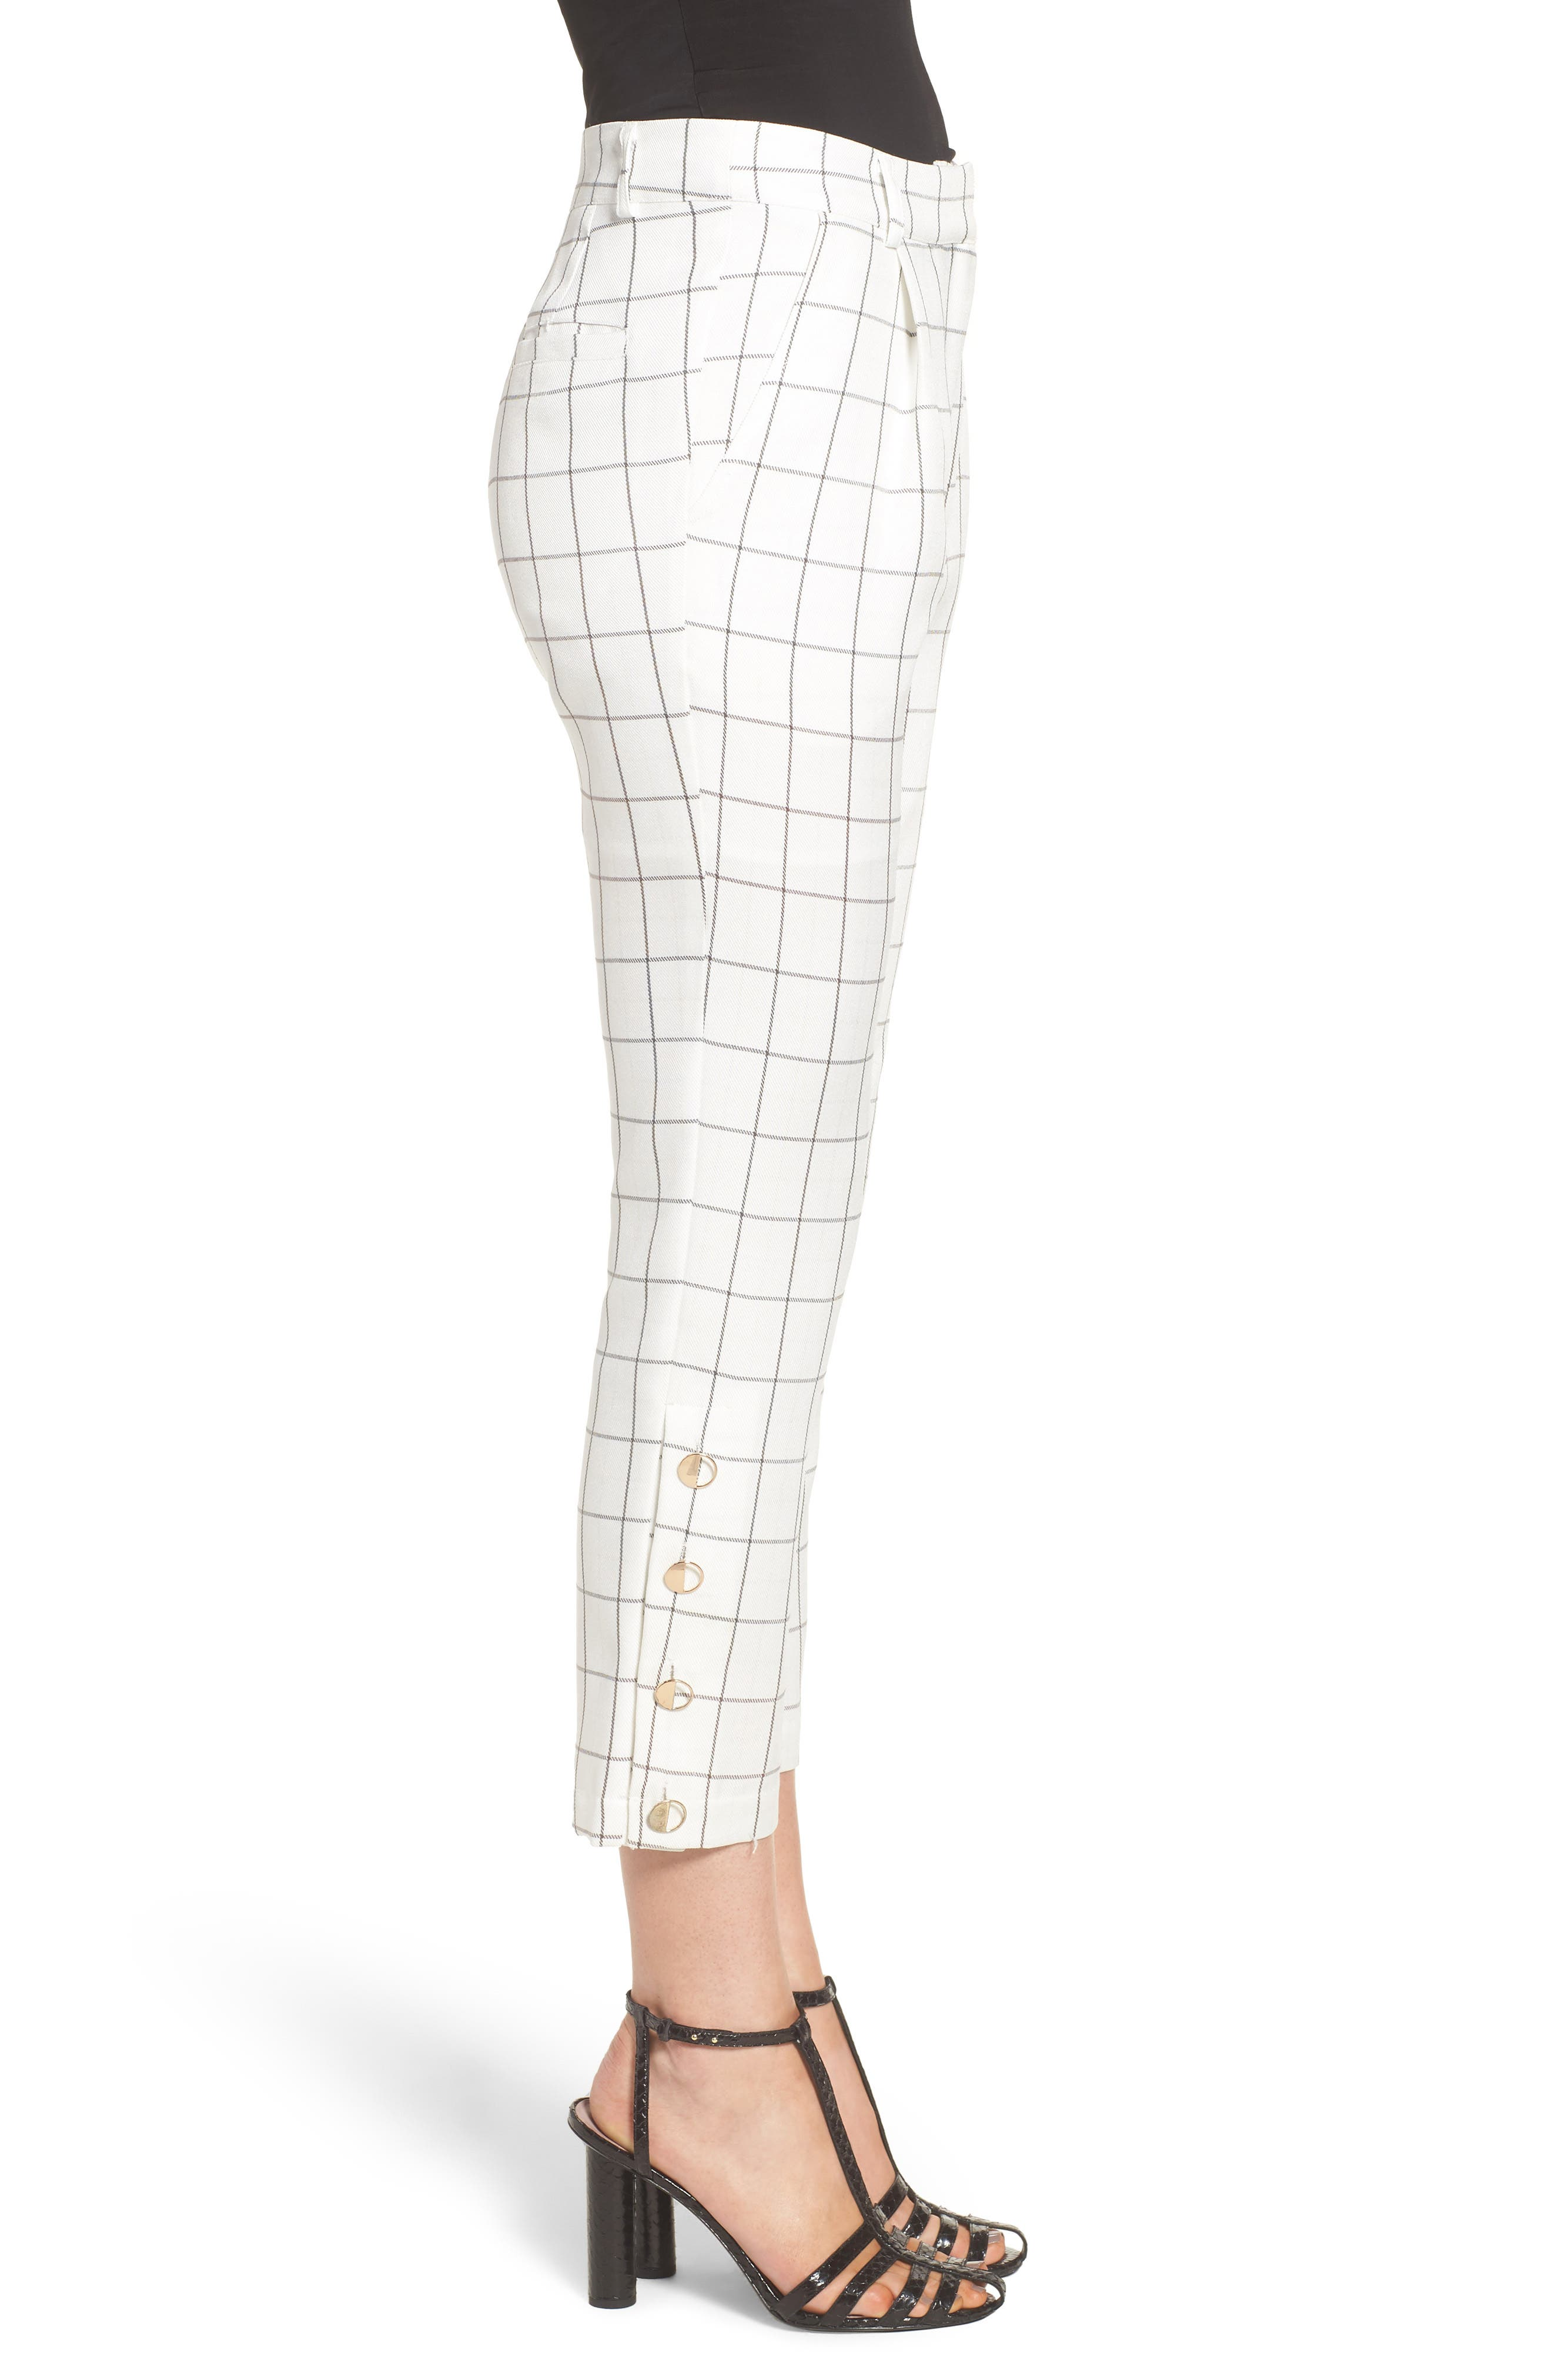 Chriselle x J.O.A. High Waist Ankle Skinny Trousers,                             Alternate thumbnail 6, color,                             White